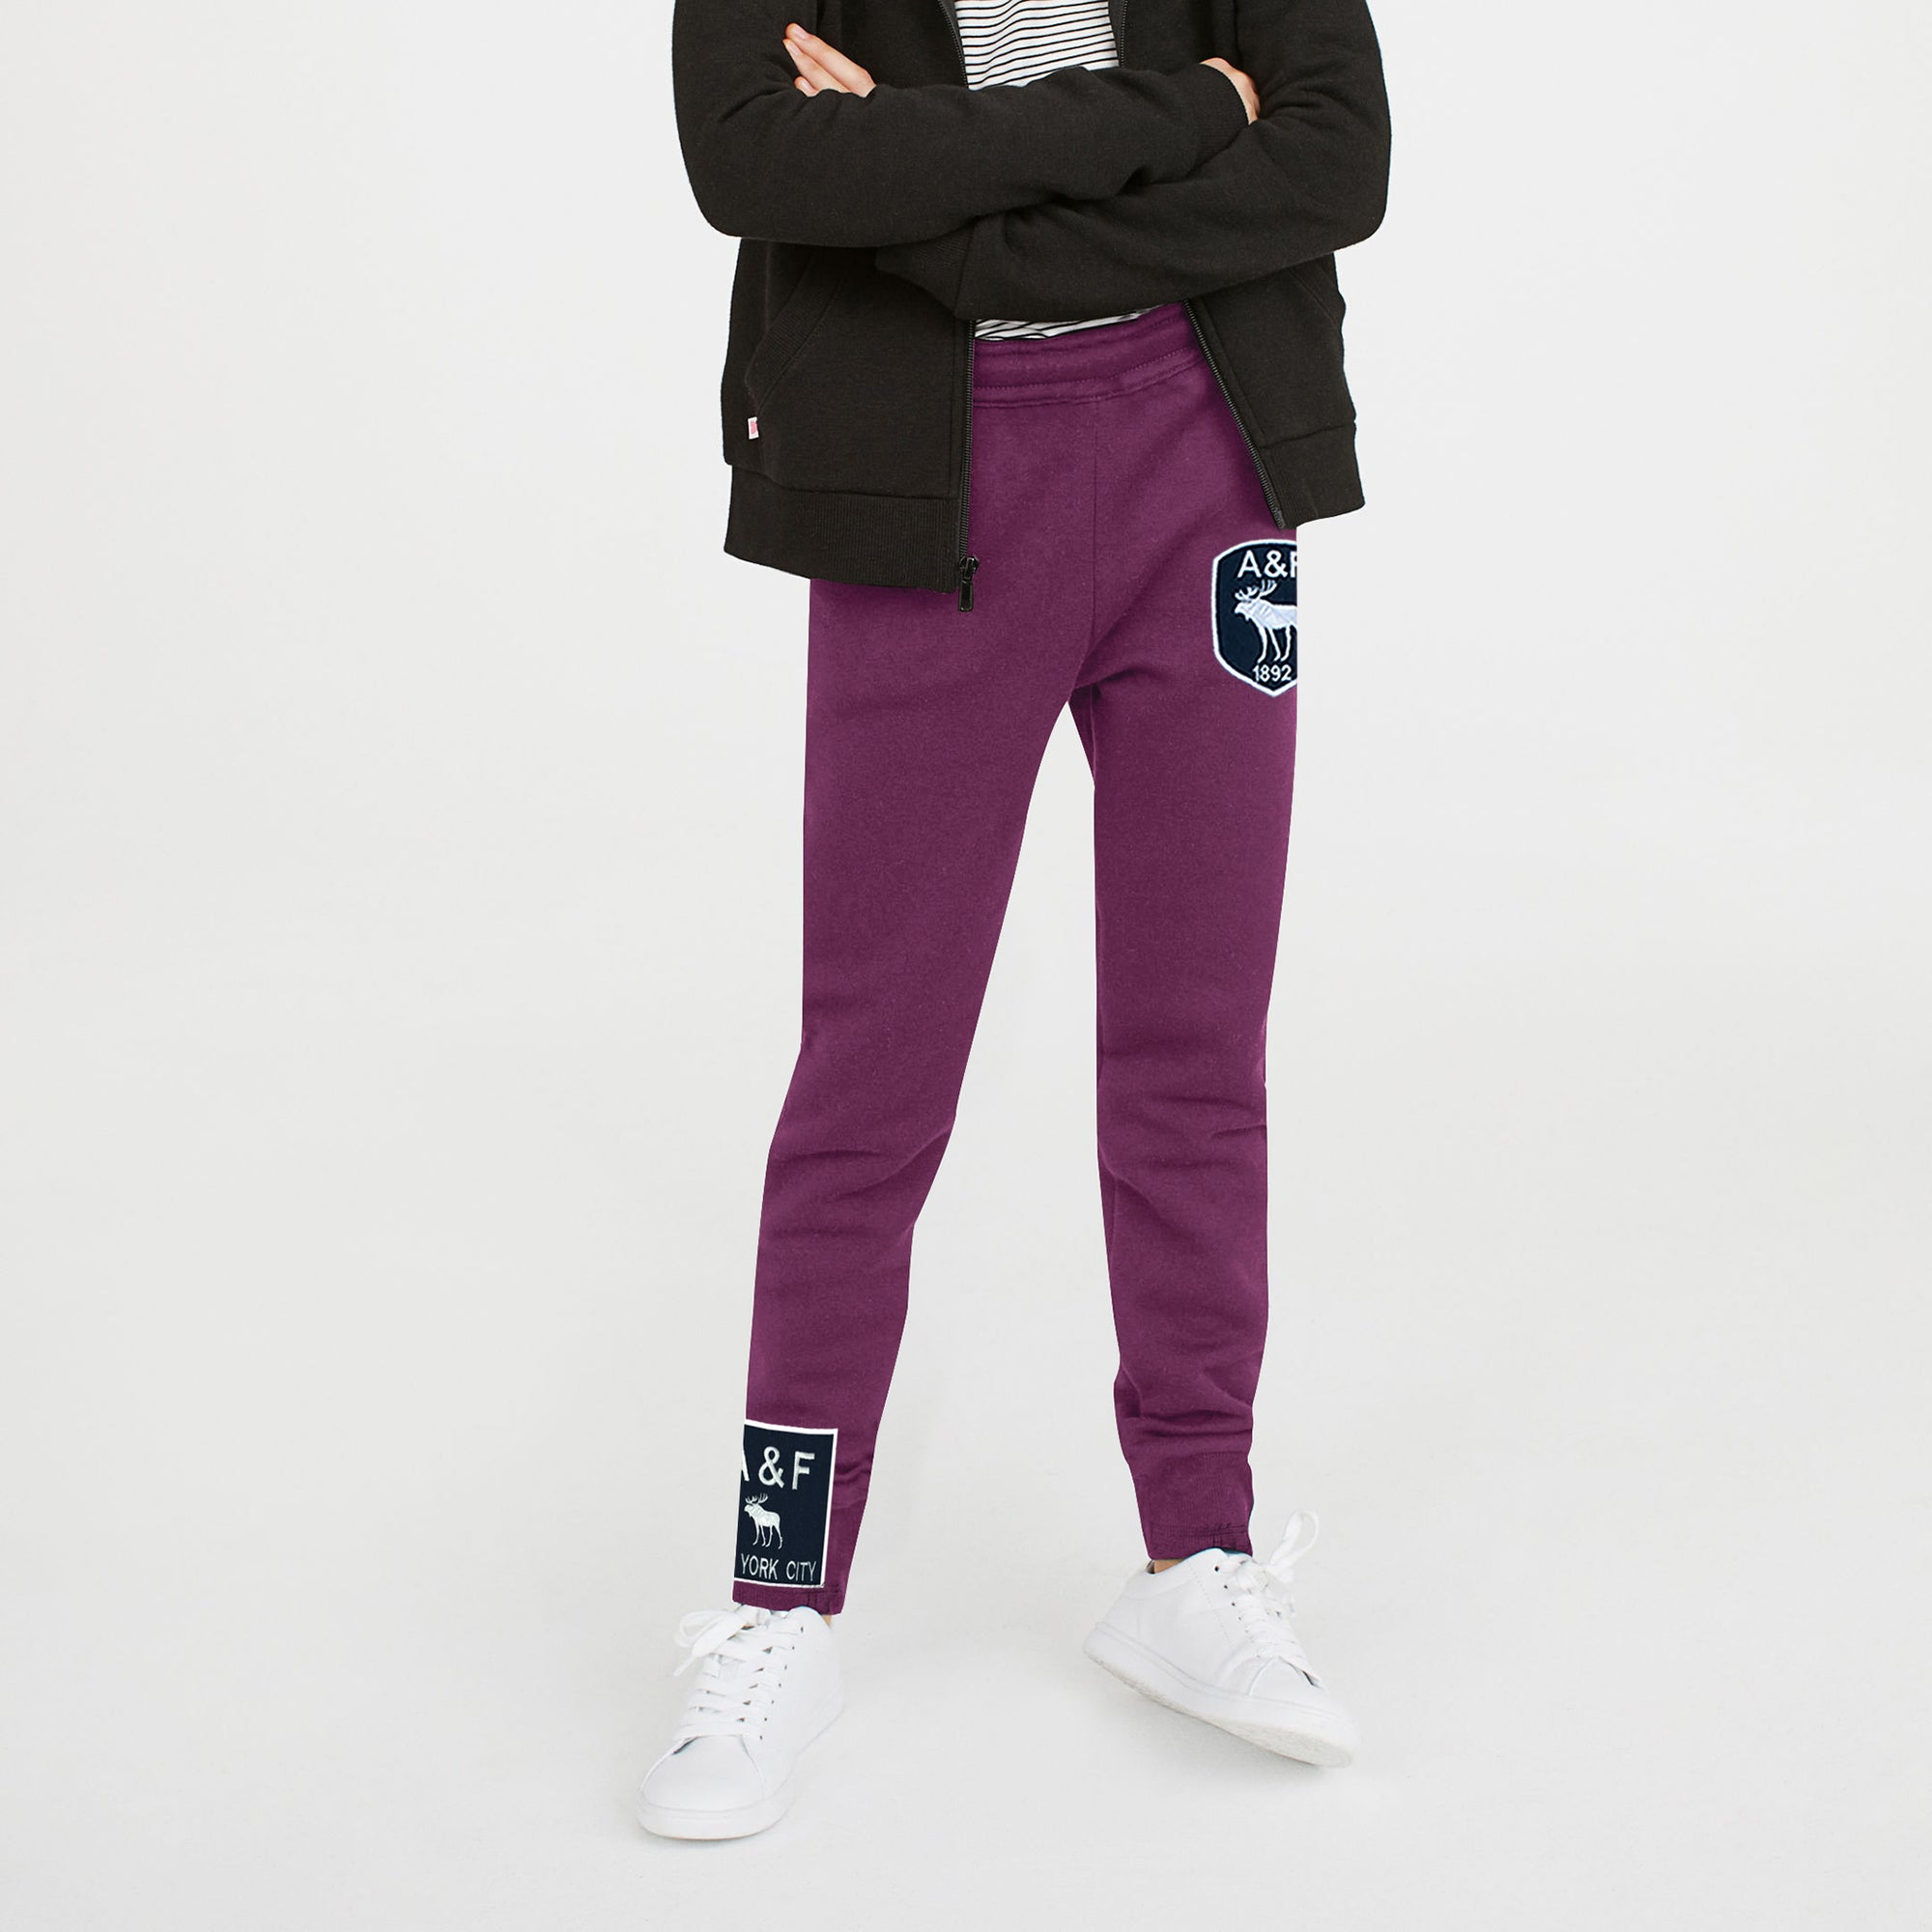 A&F Fleece Jogger Trouser For Kids-Dark Pink-BE7898